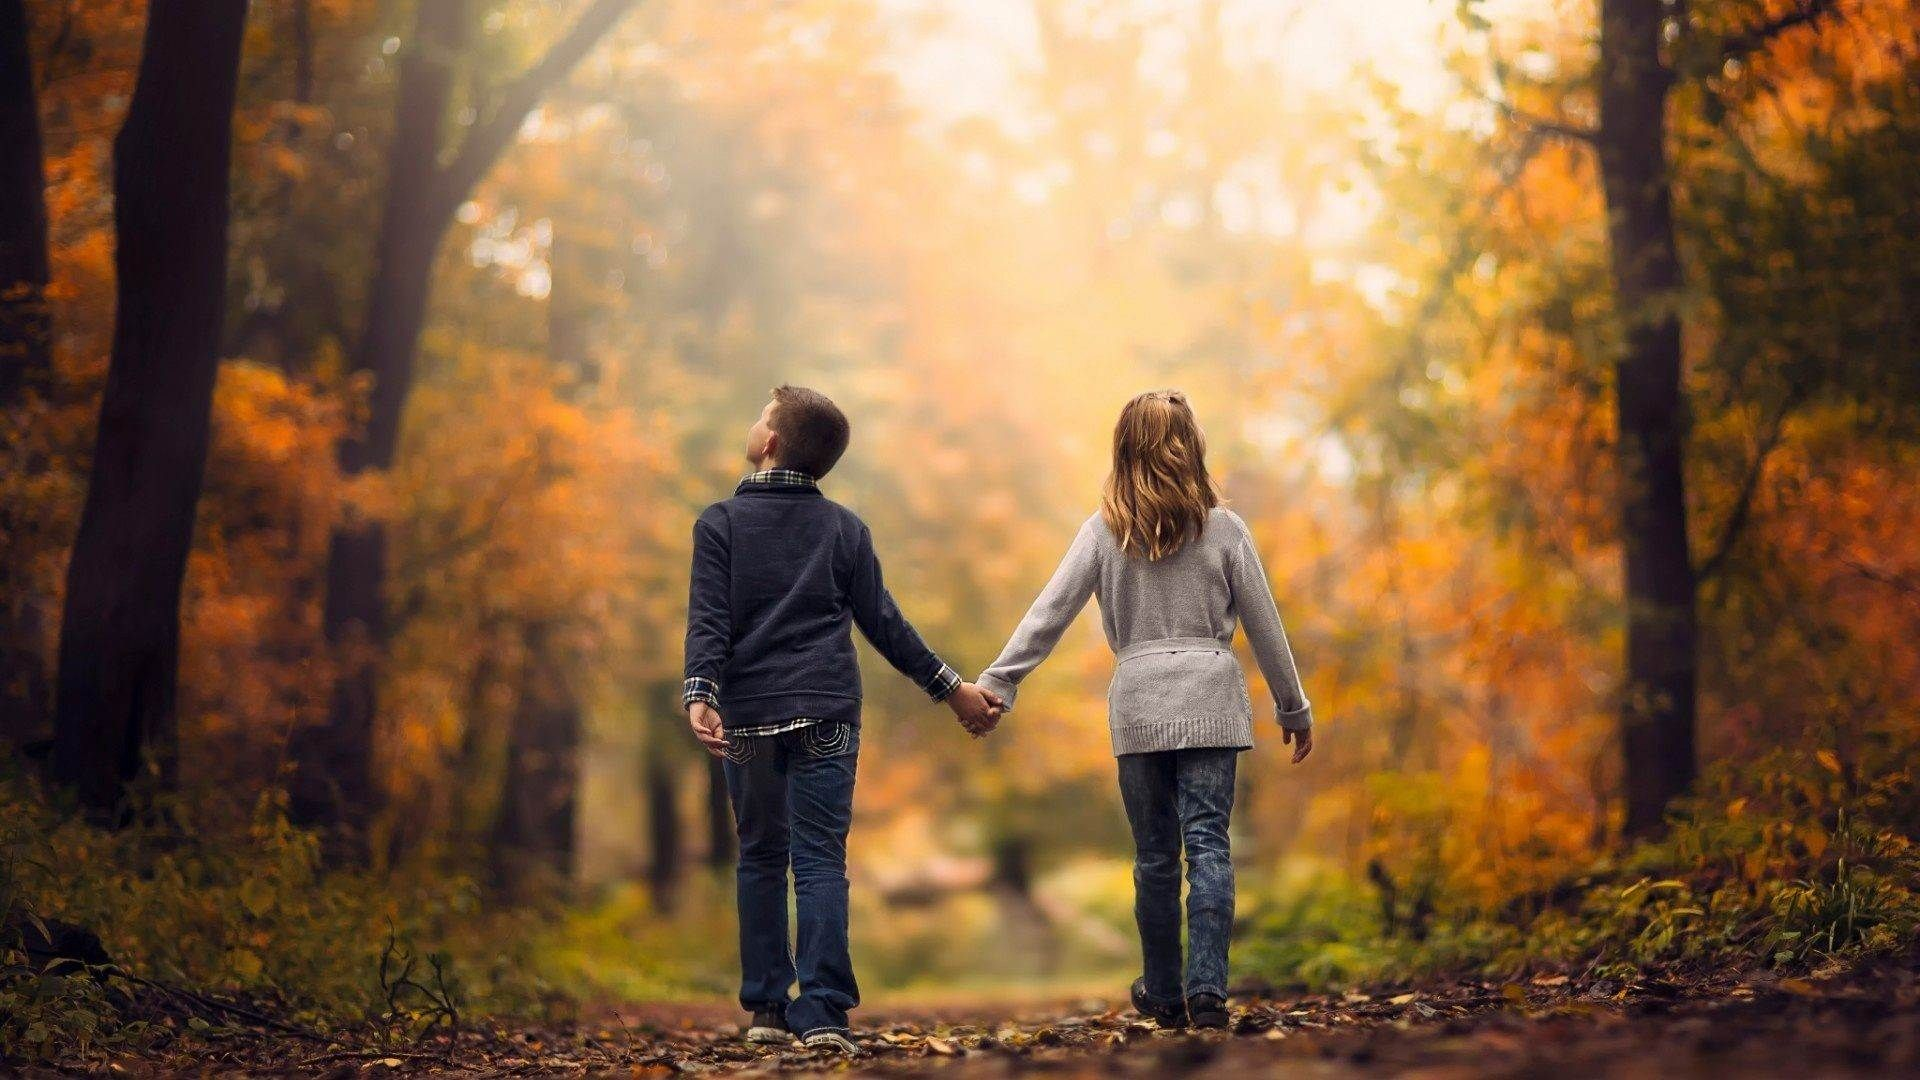 childhood love couple wallpaper hd high quality download 1920×1080